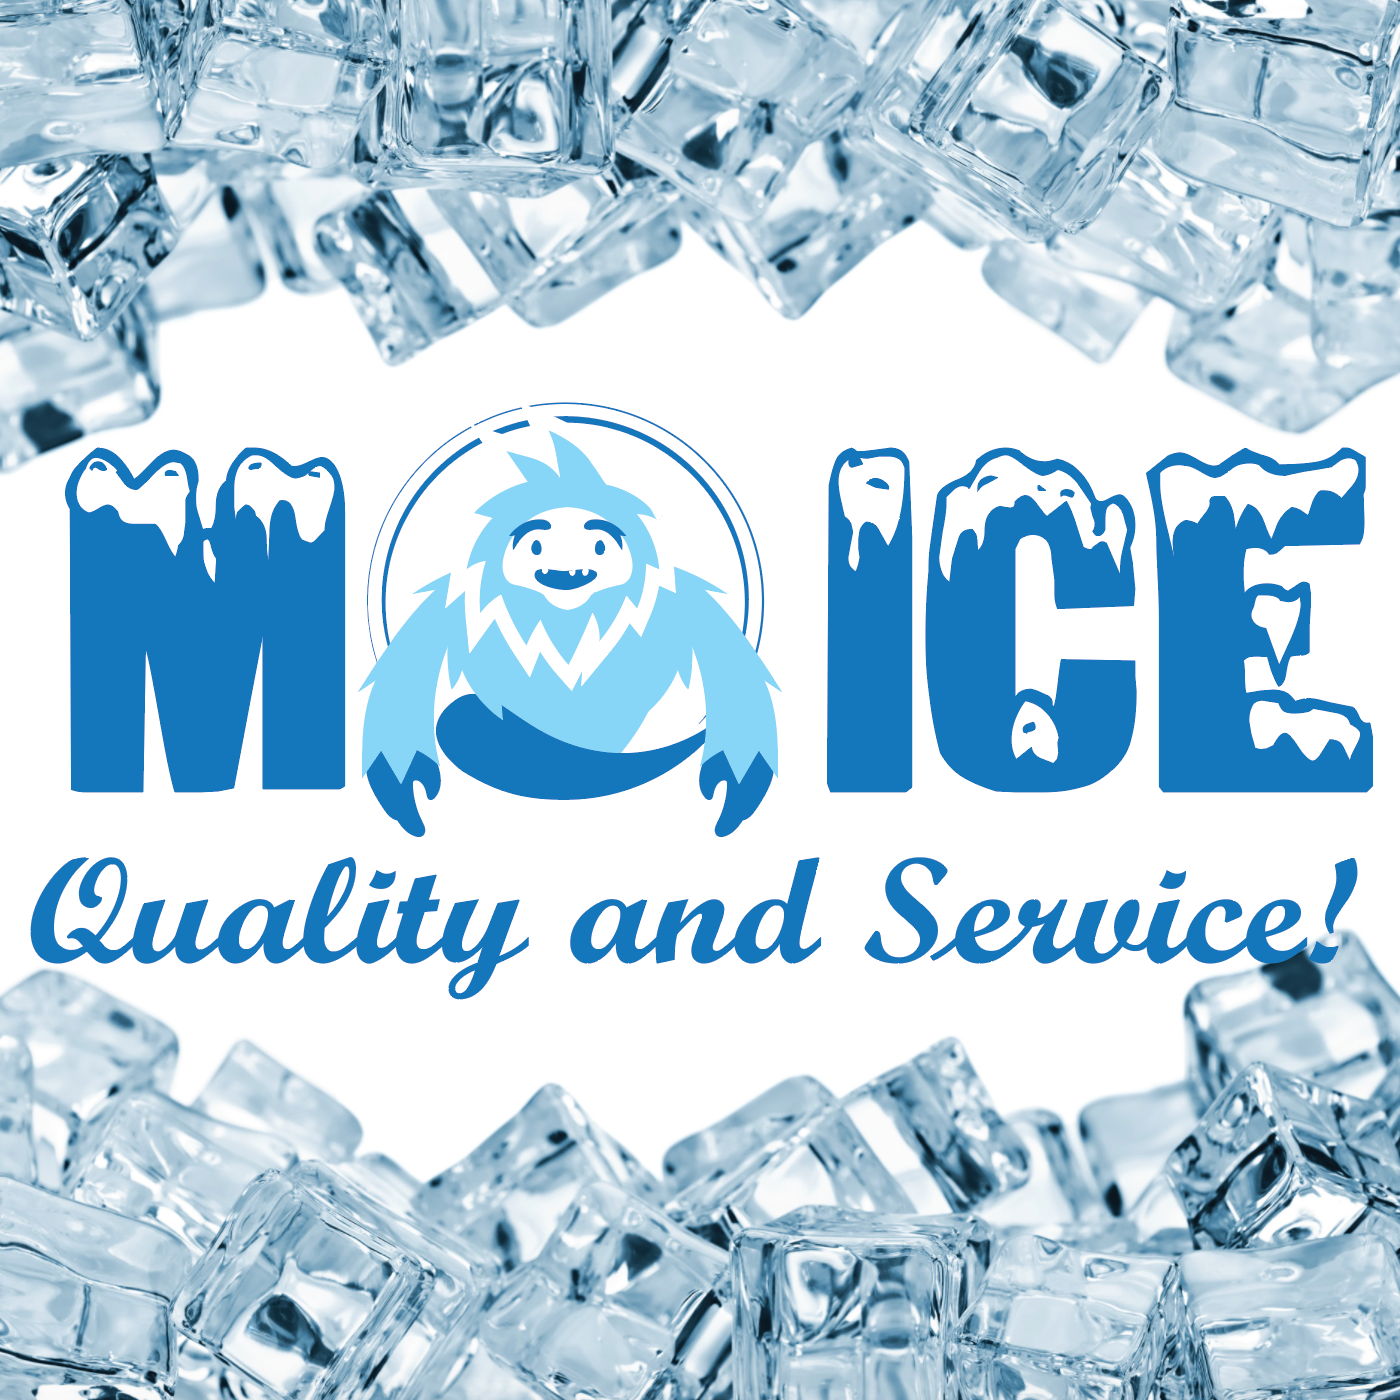 Mo Ice Delivery